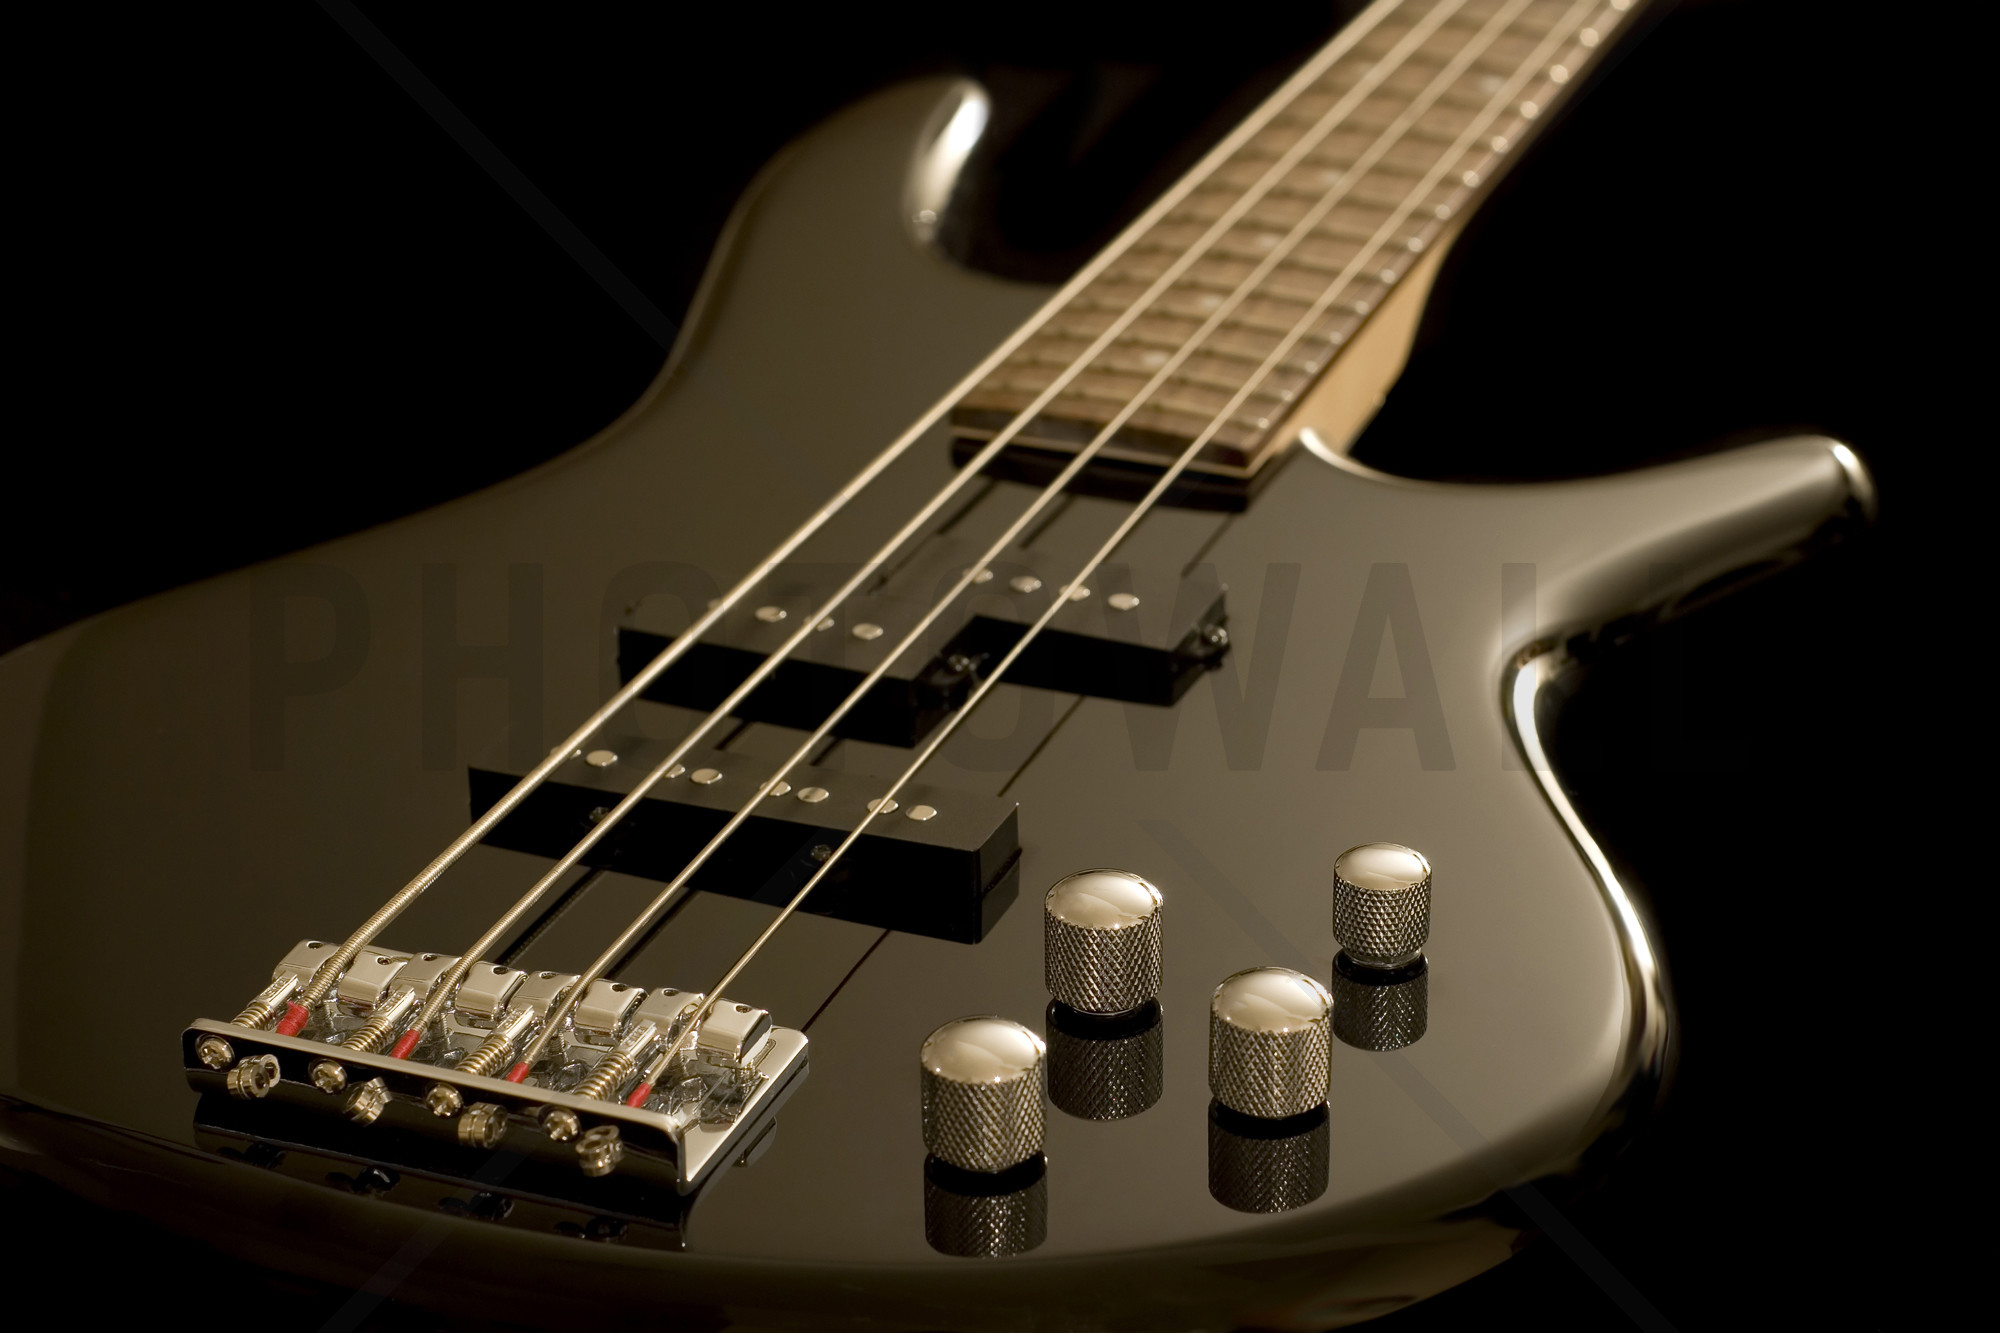 Bass Guitar Wallpaper Wallpapertag: Bass Guitar Wallpapers (57+ Images